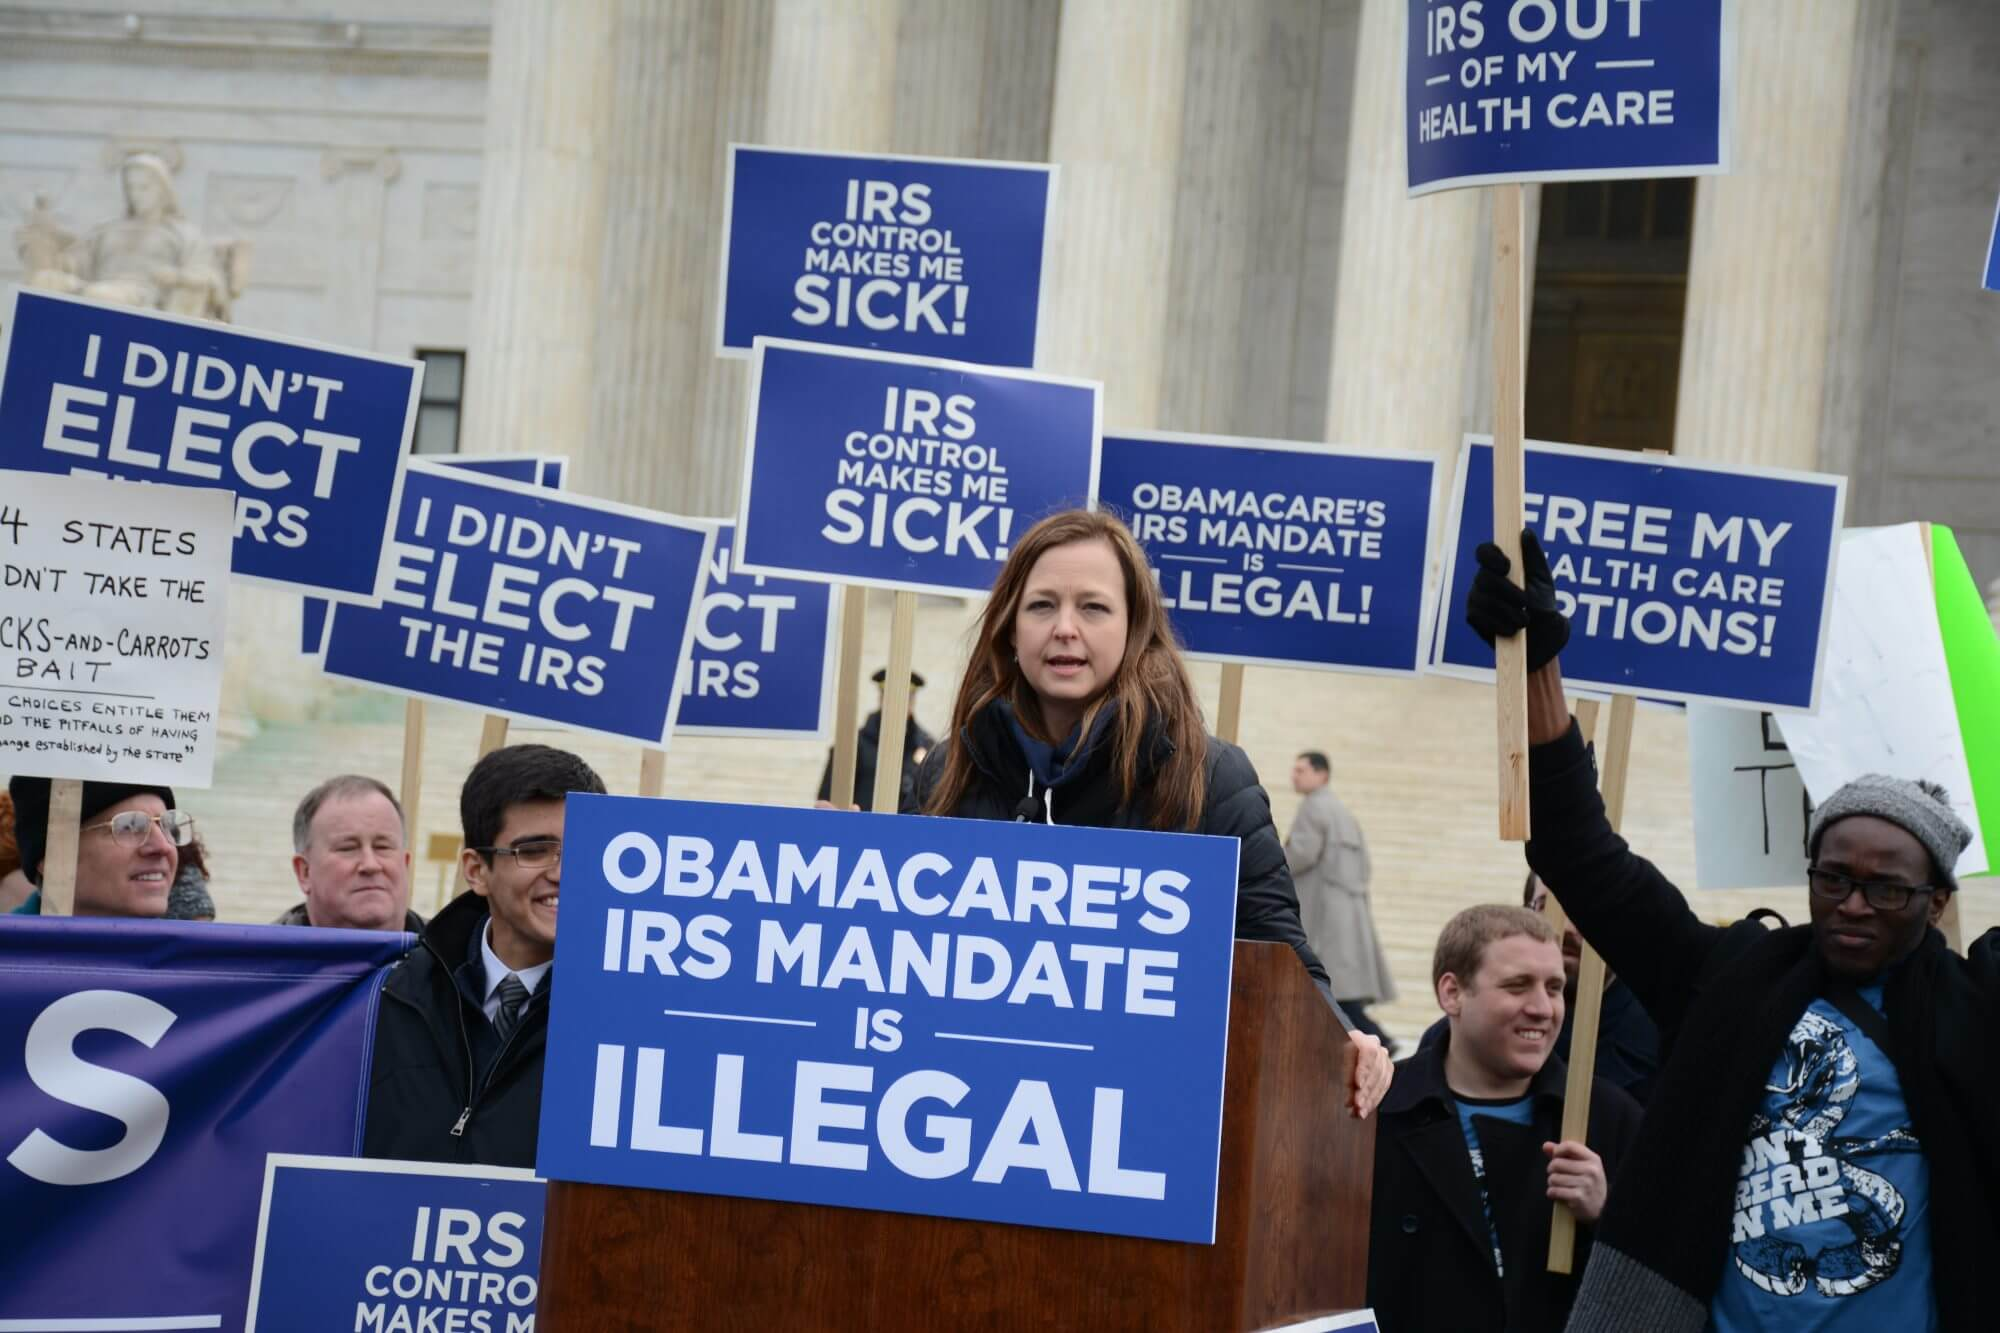 A handful of words leaves Obamacare's survival at stake